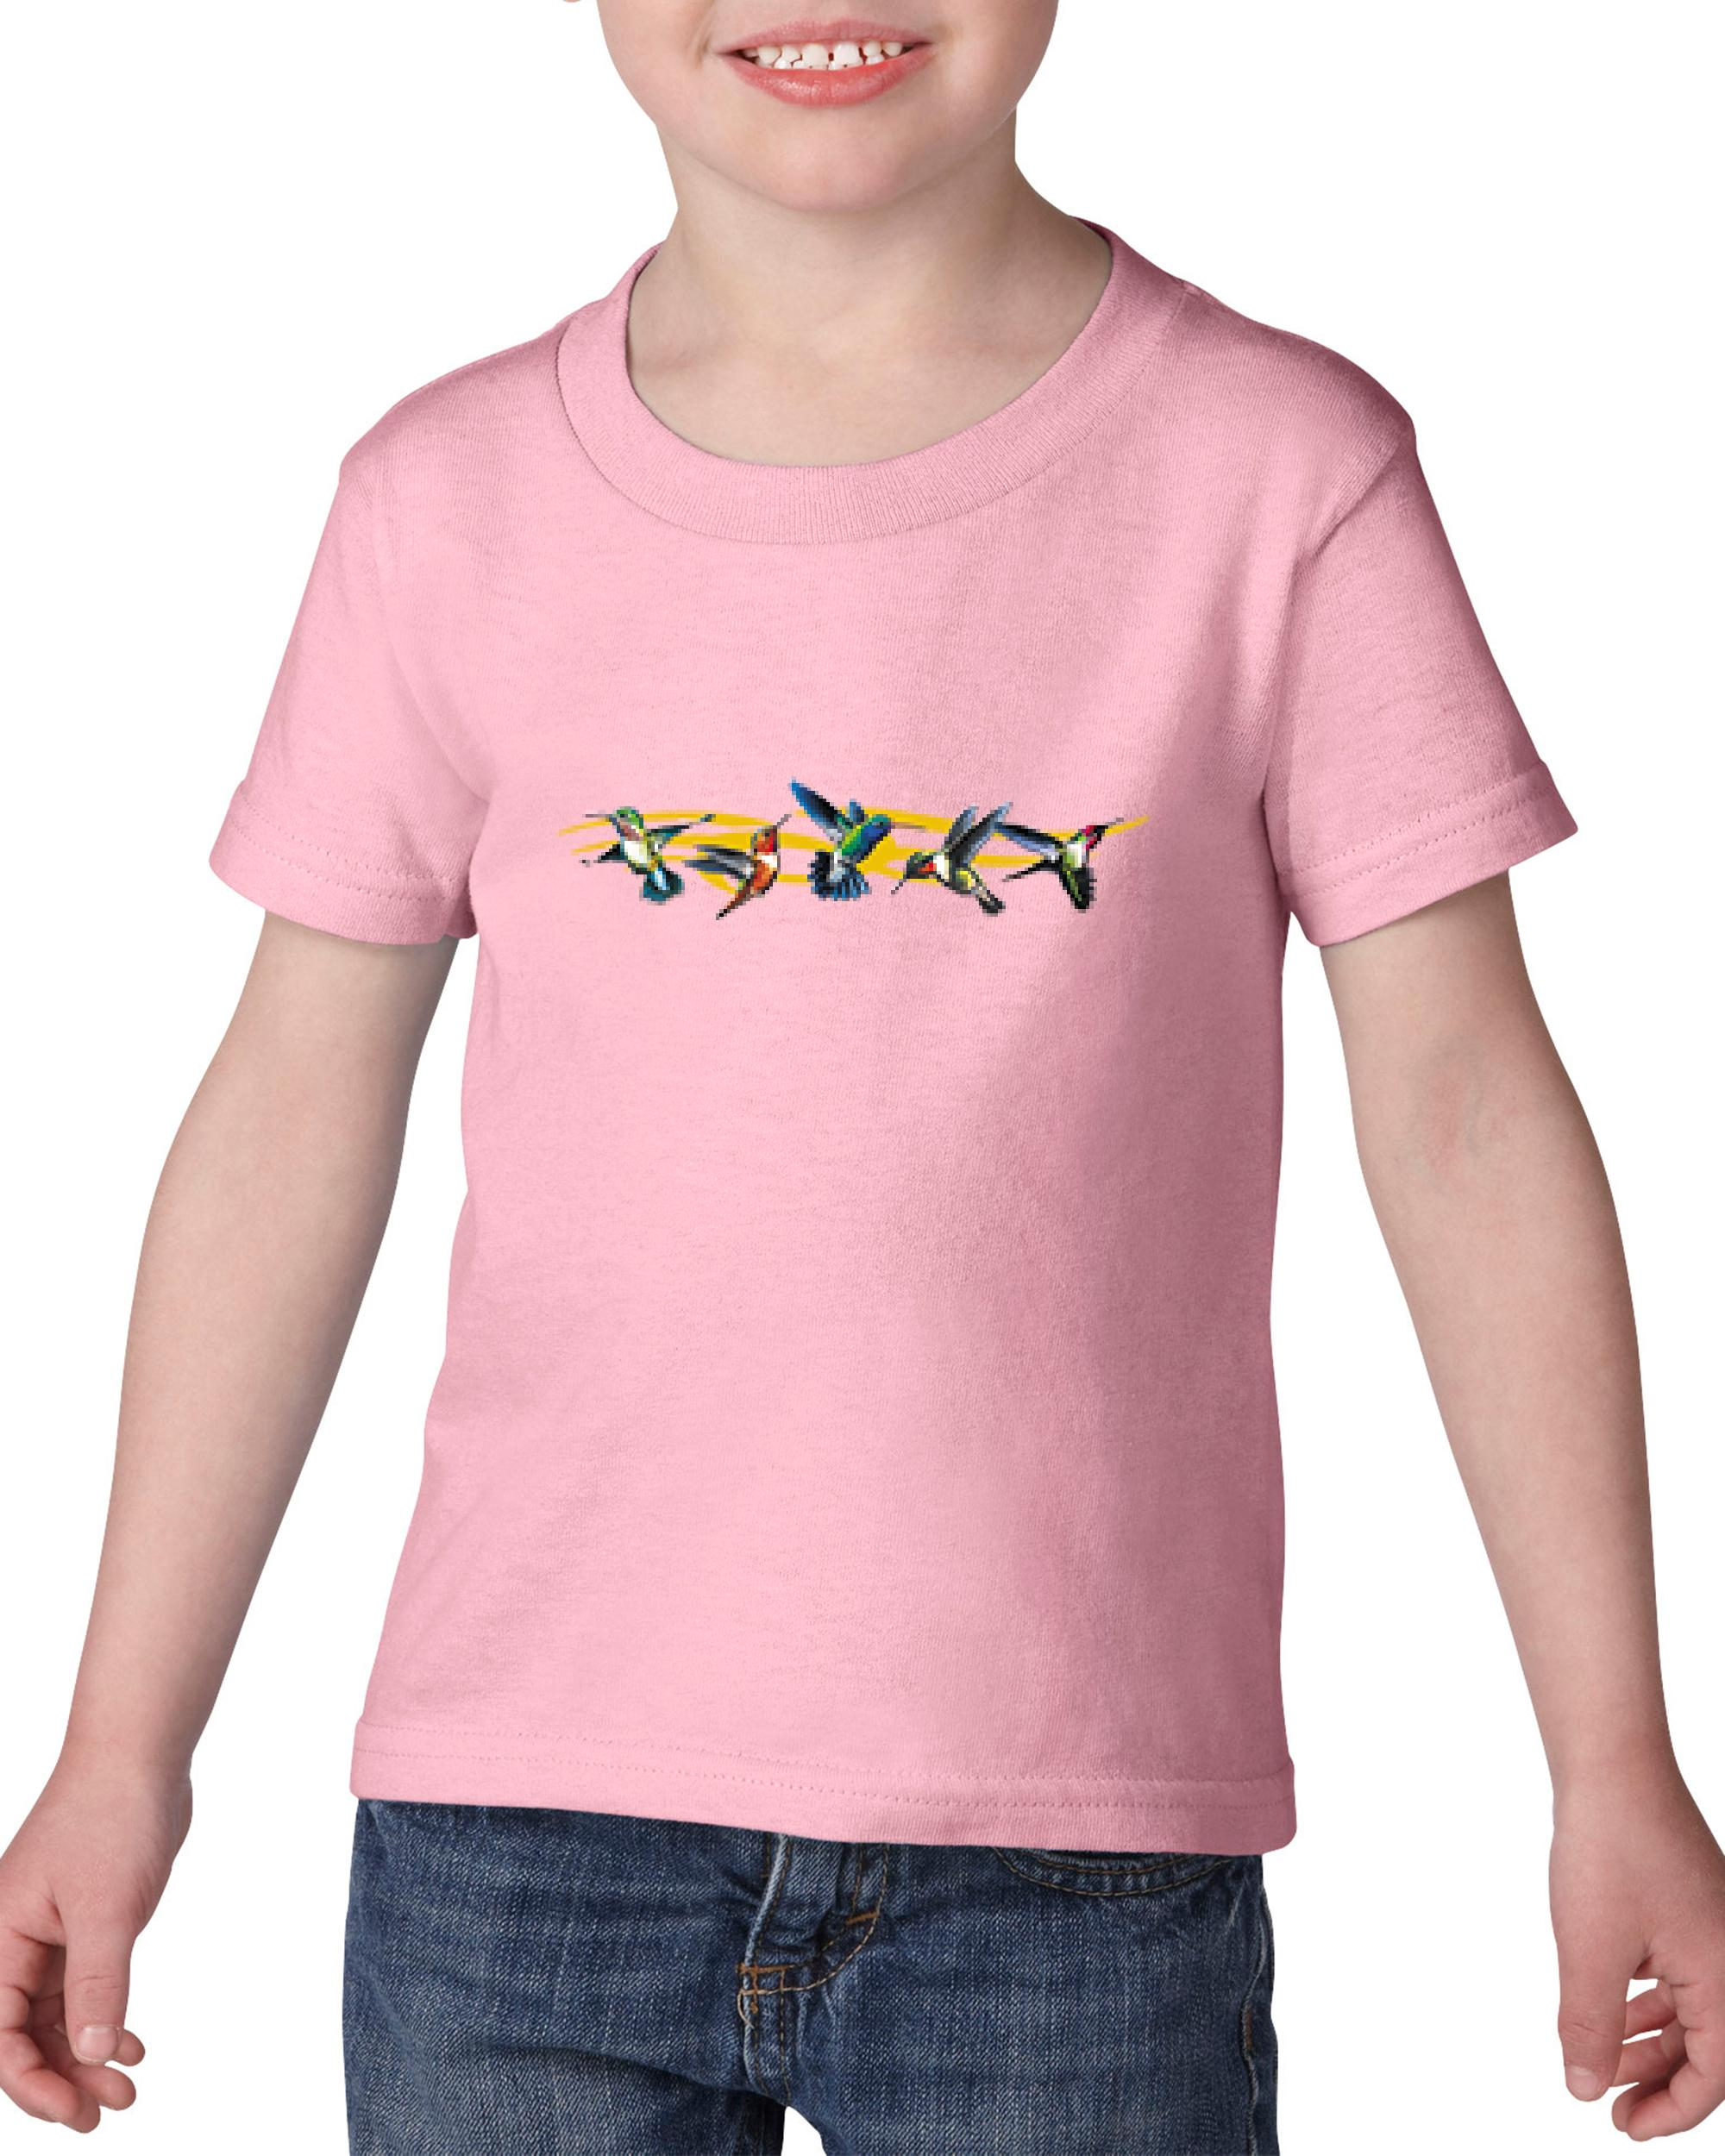 Artix Humming Birds Group Tribal Christmas Birthday Gift Match W Hats Maps Bags Jeans Heavy Cotton Toddler Kids T-Shirt Tee Clothing